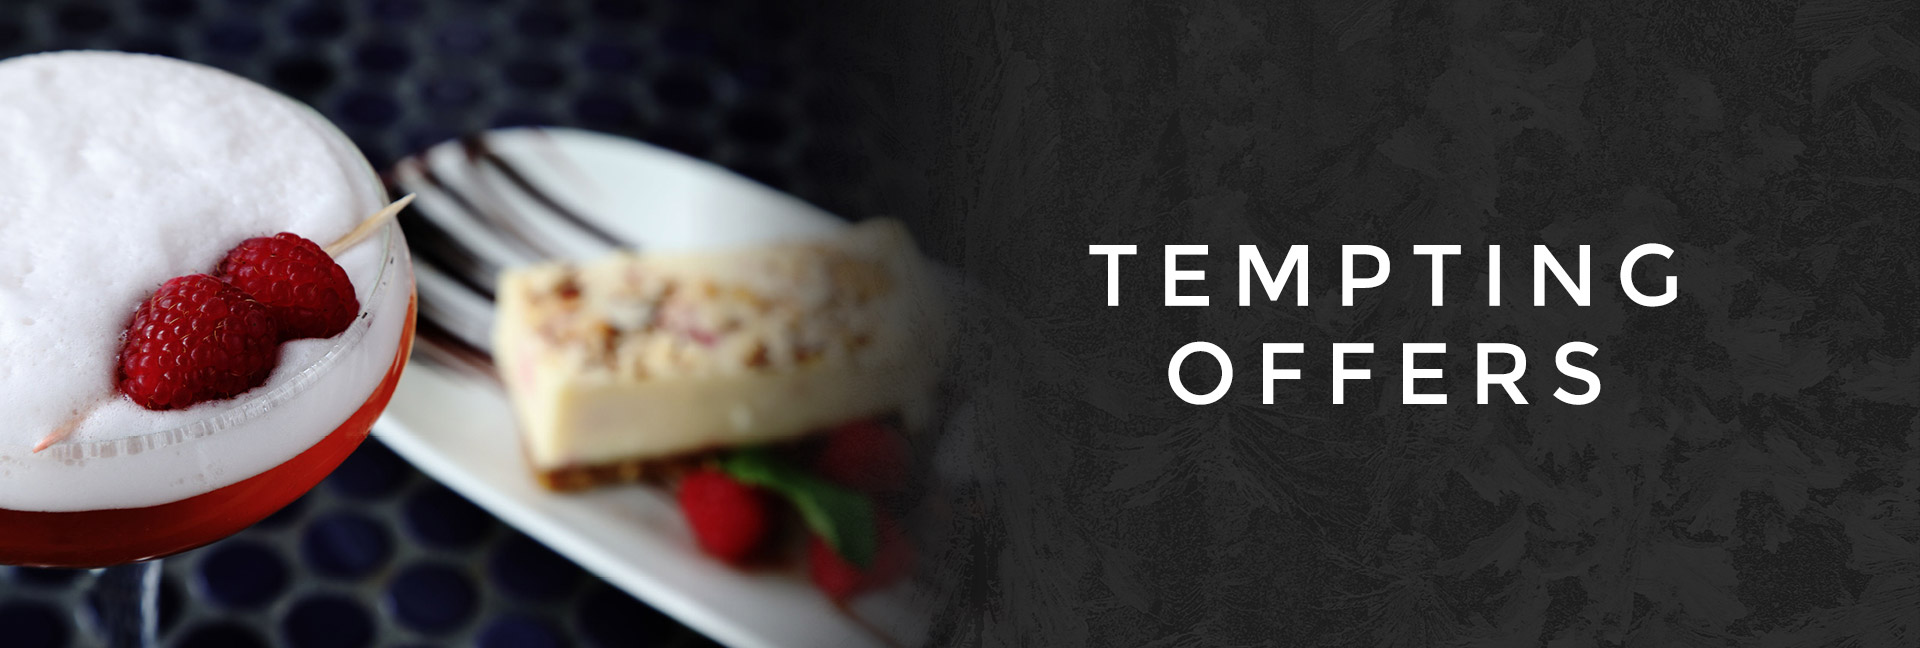 Temping offers at All Bar One Cannon Street